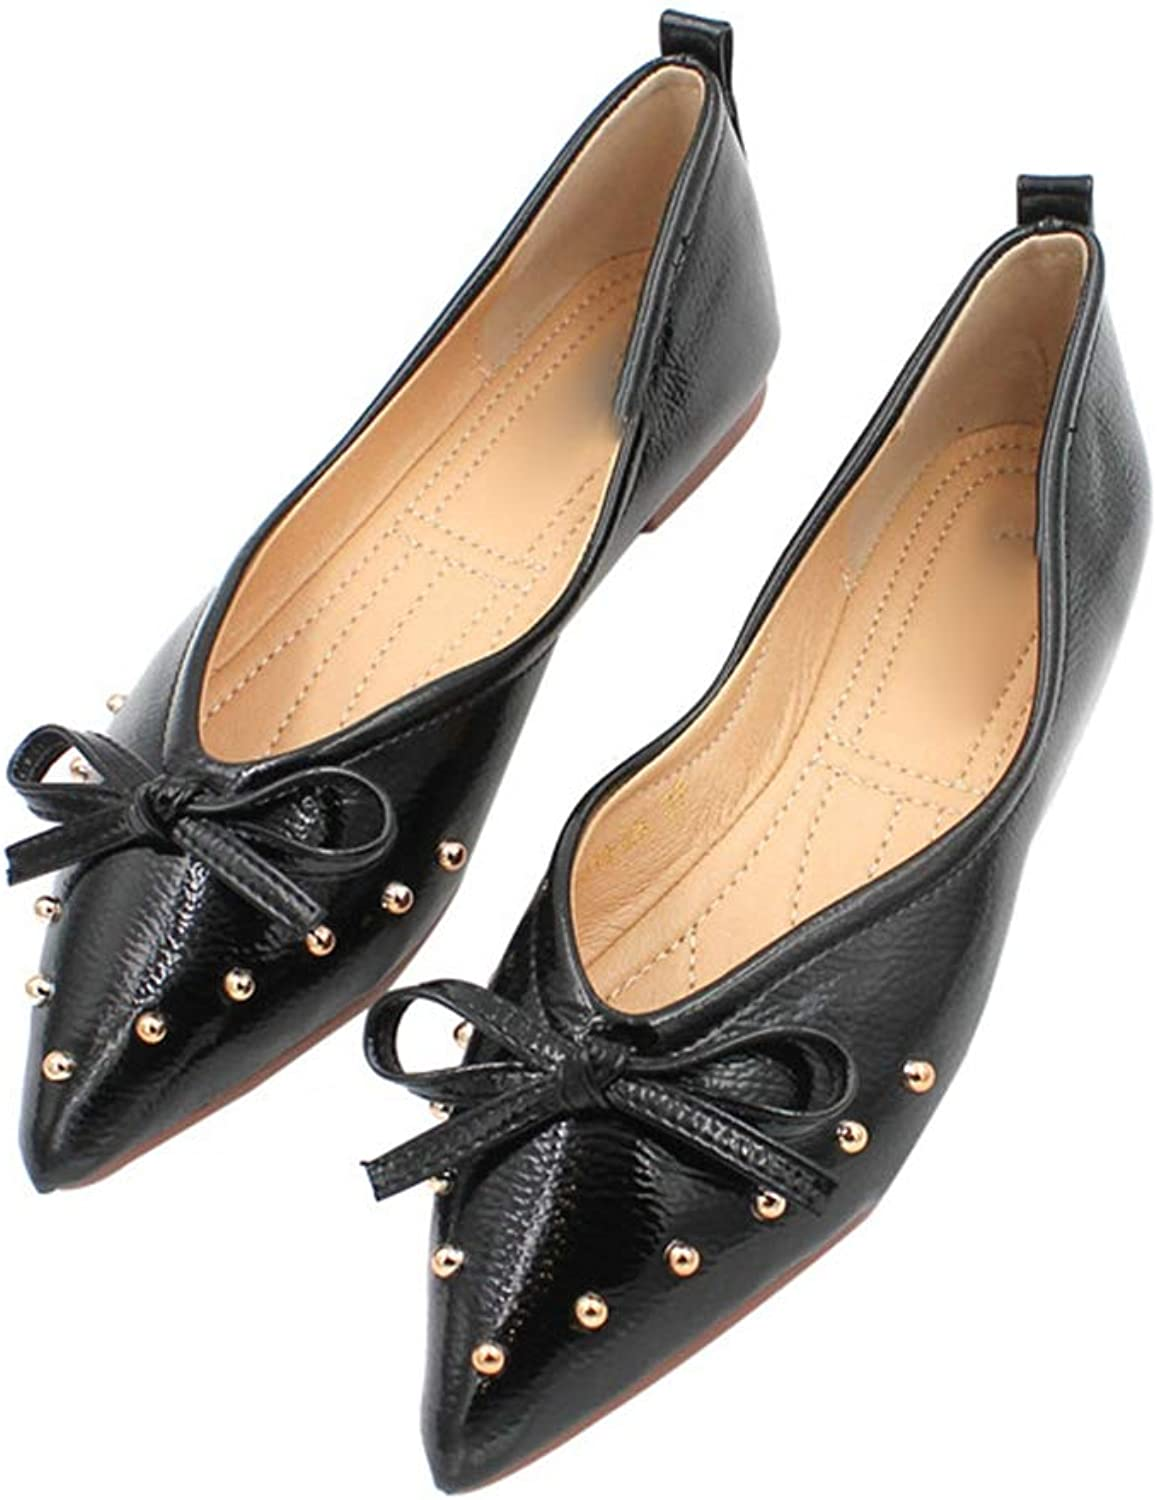 August Jim Flats shoes Women Comfortable Pointed Toe Black Bow Soft Sole Fat Heel shoes